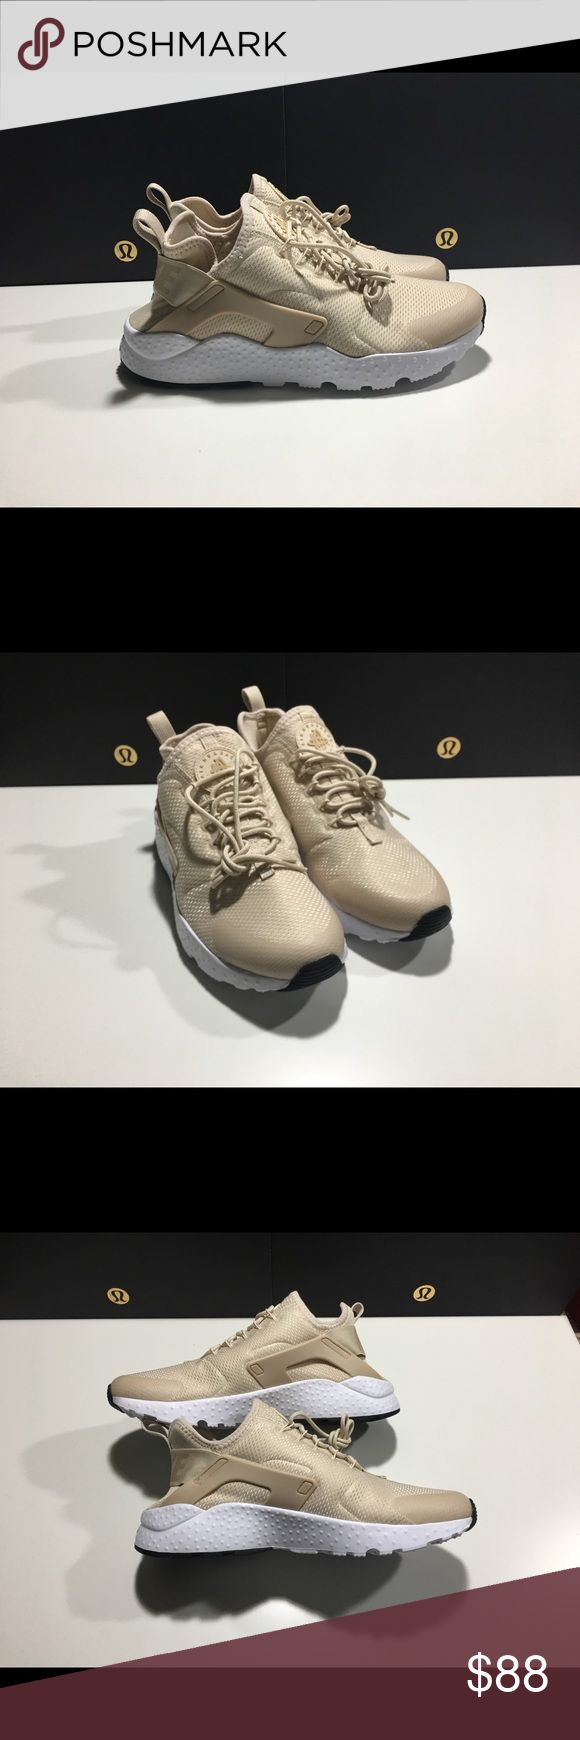 Women's Nike Air Huarache Ultra NEW 819151 OATMEAL Brand new in box, missing the top. Color way is oatmeal / linen white Nike Shoes Athletic Shoes